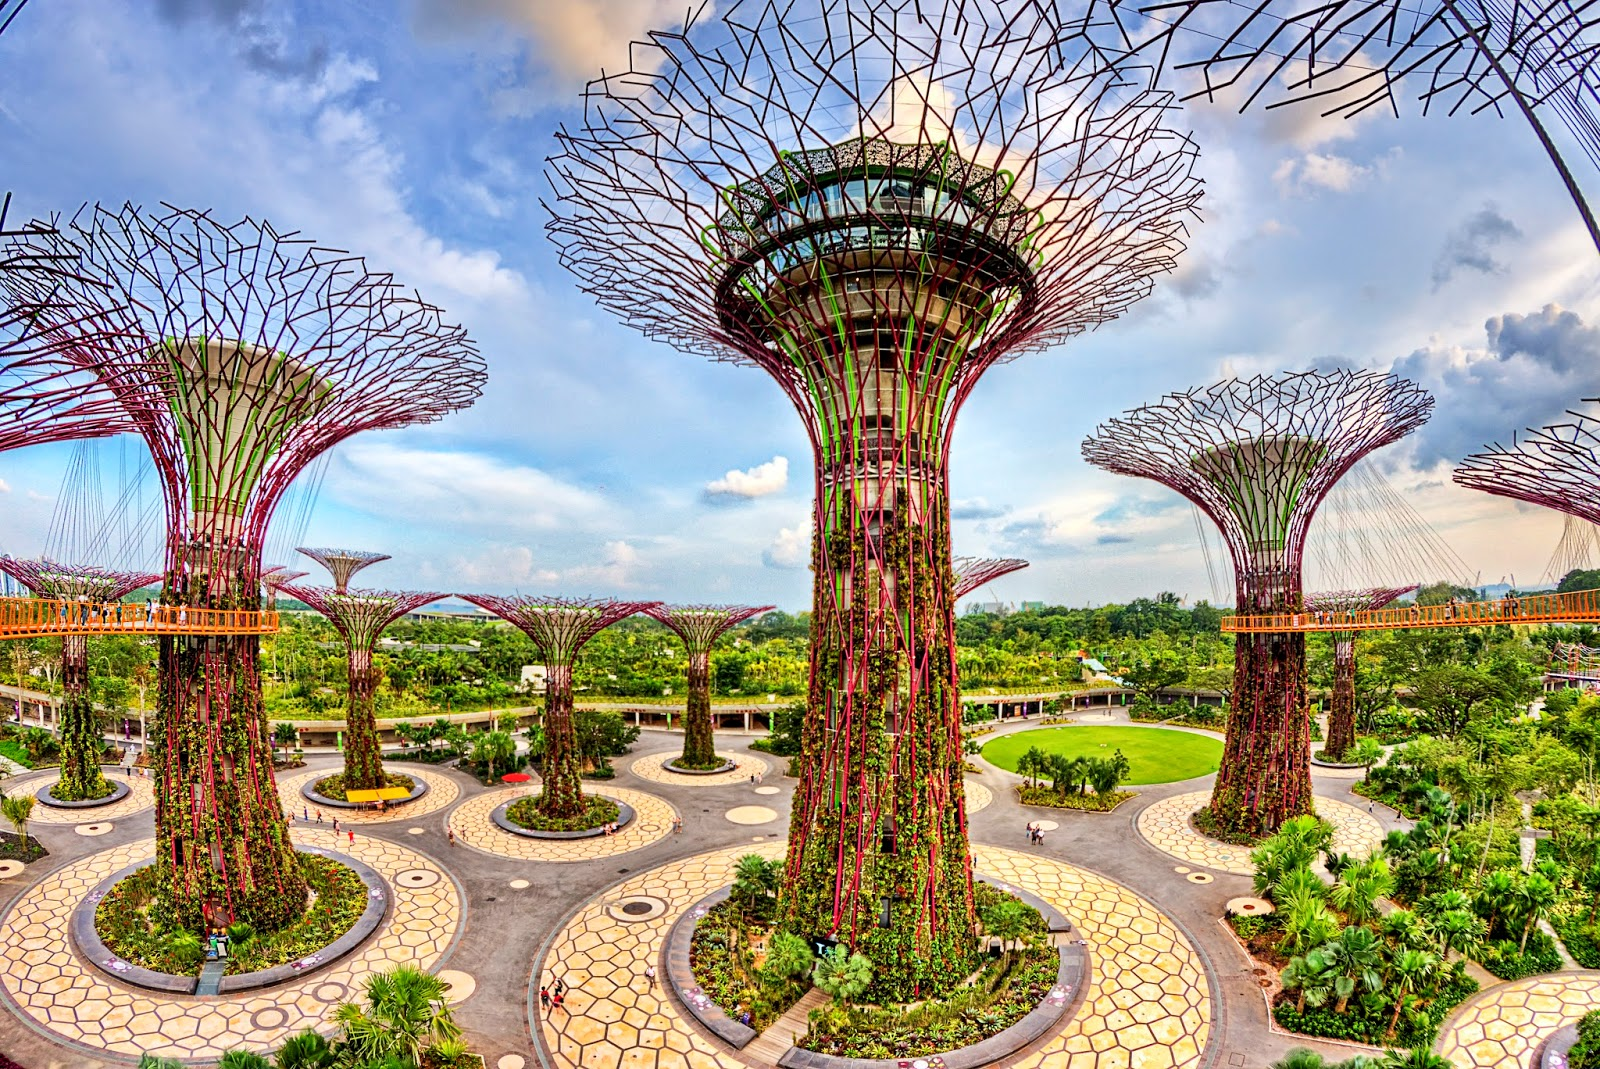 Gardens by the bay may 2014 welcome to super mommies daddies blog - Garden by the bay flower show ...